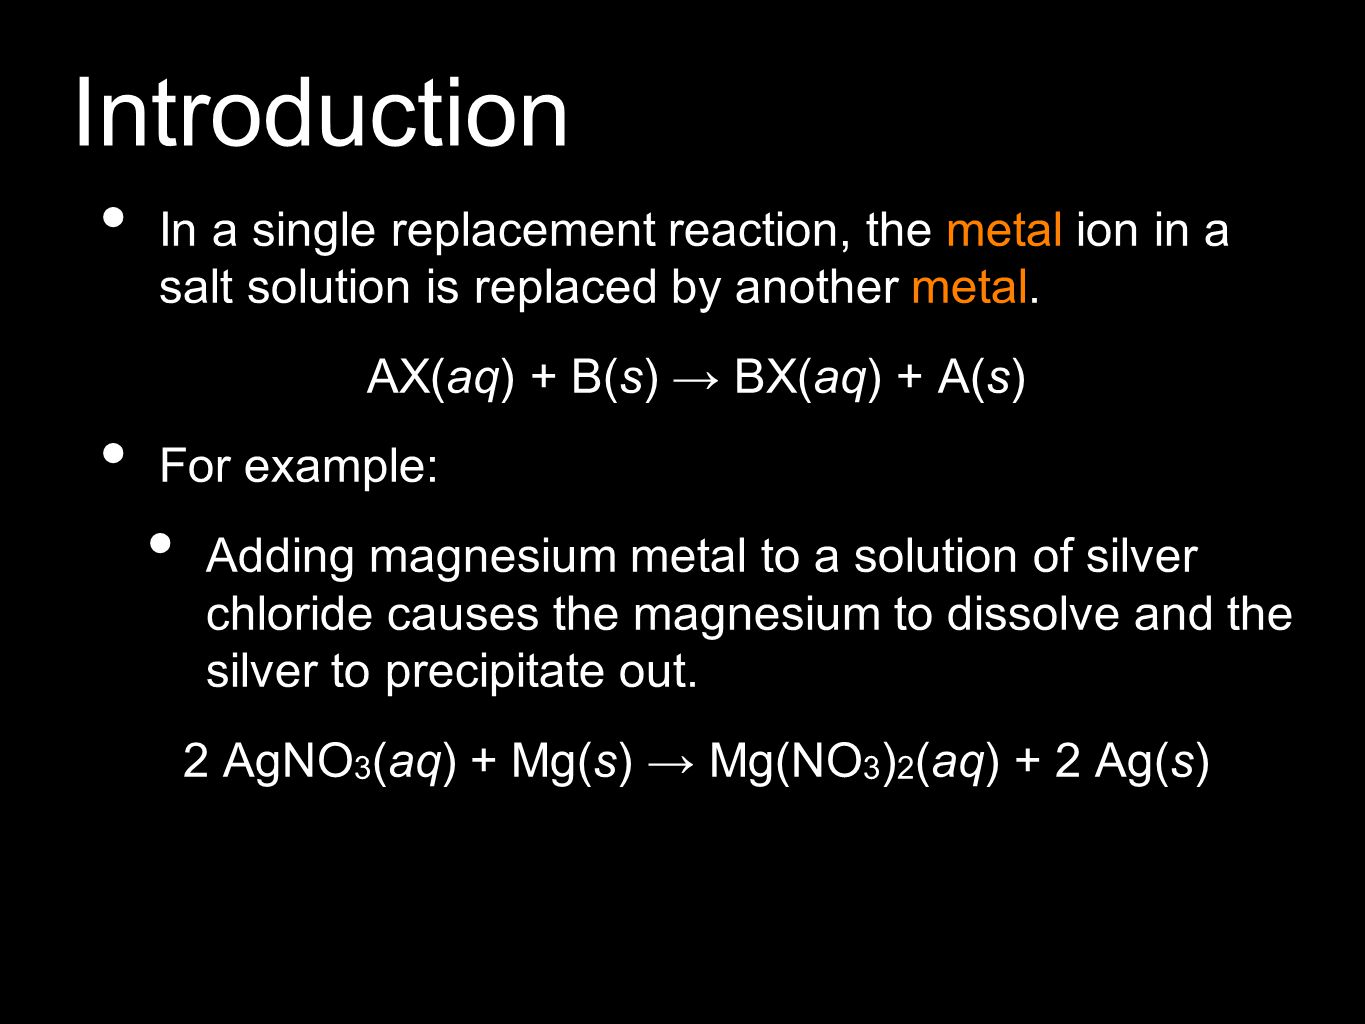 Introduction In a single replacement reaction, the metal ion in a salt solution is replaced by another metal.